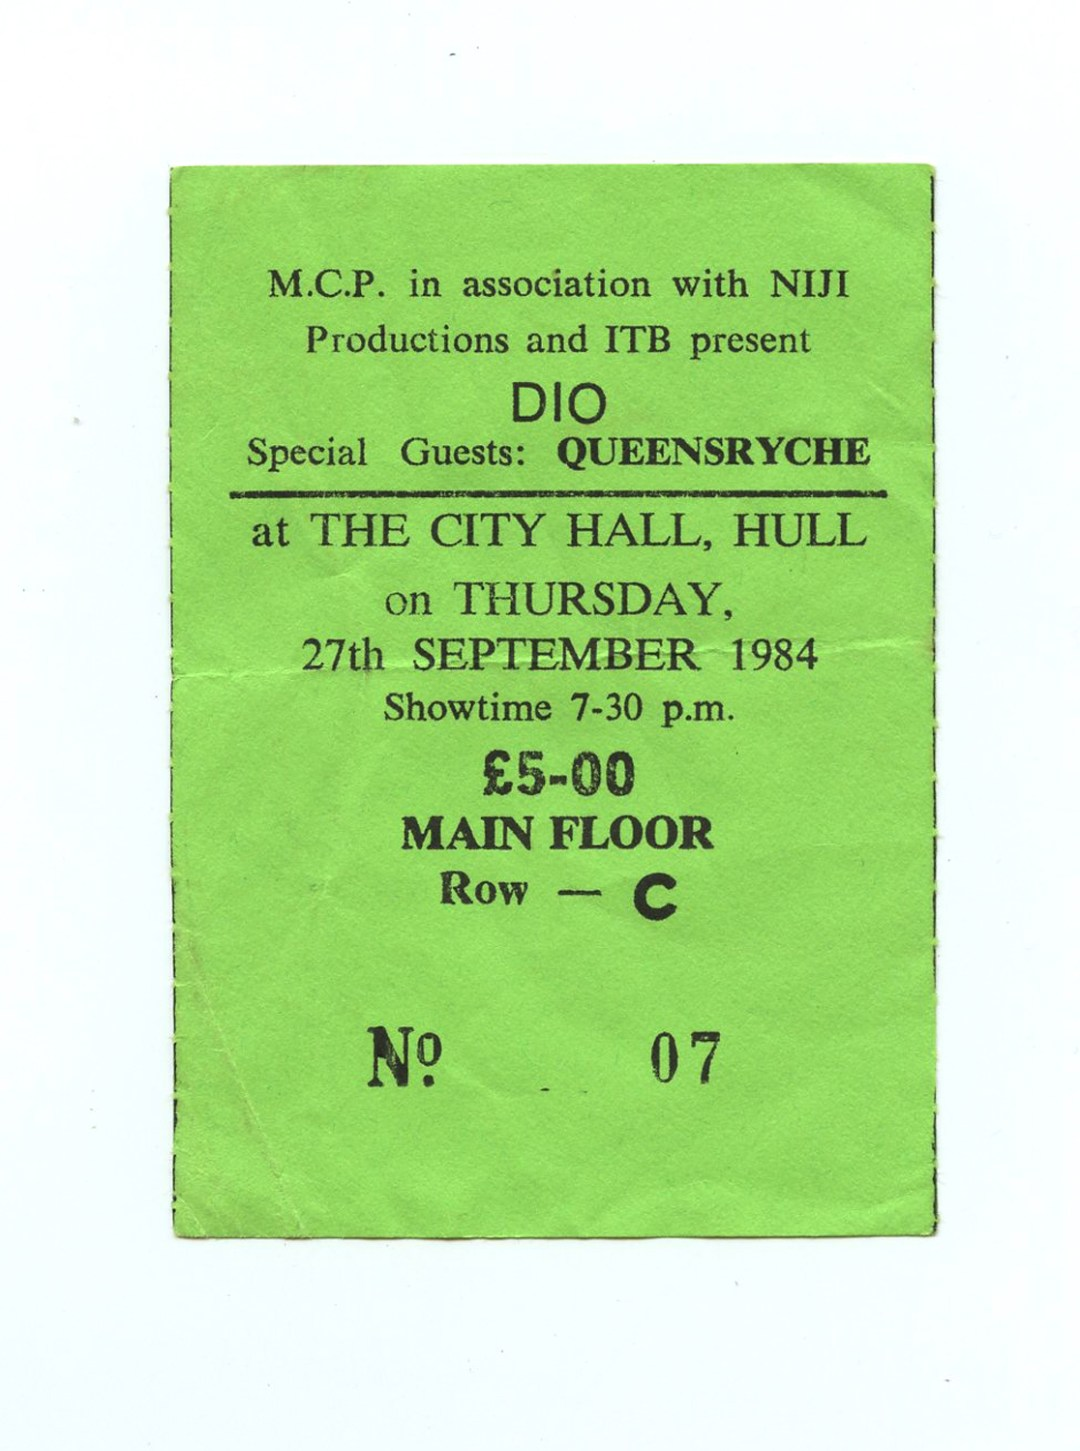 DIO Ticketstub 1984 Sep 27 Hull City Hall Kingston upon Hull UK w/ Queensryche